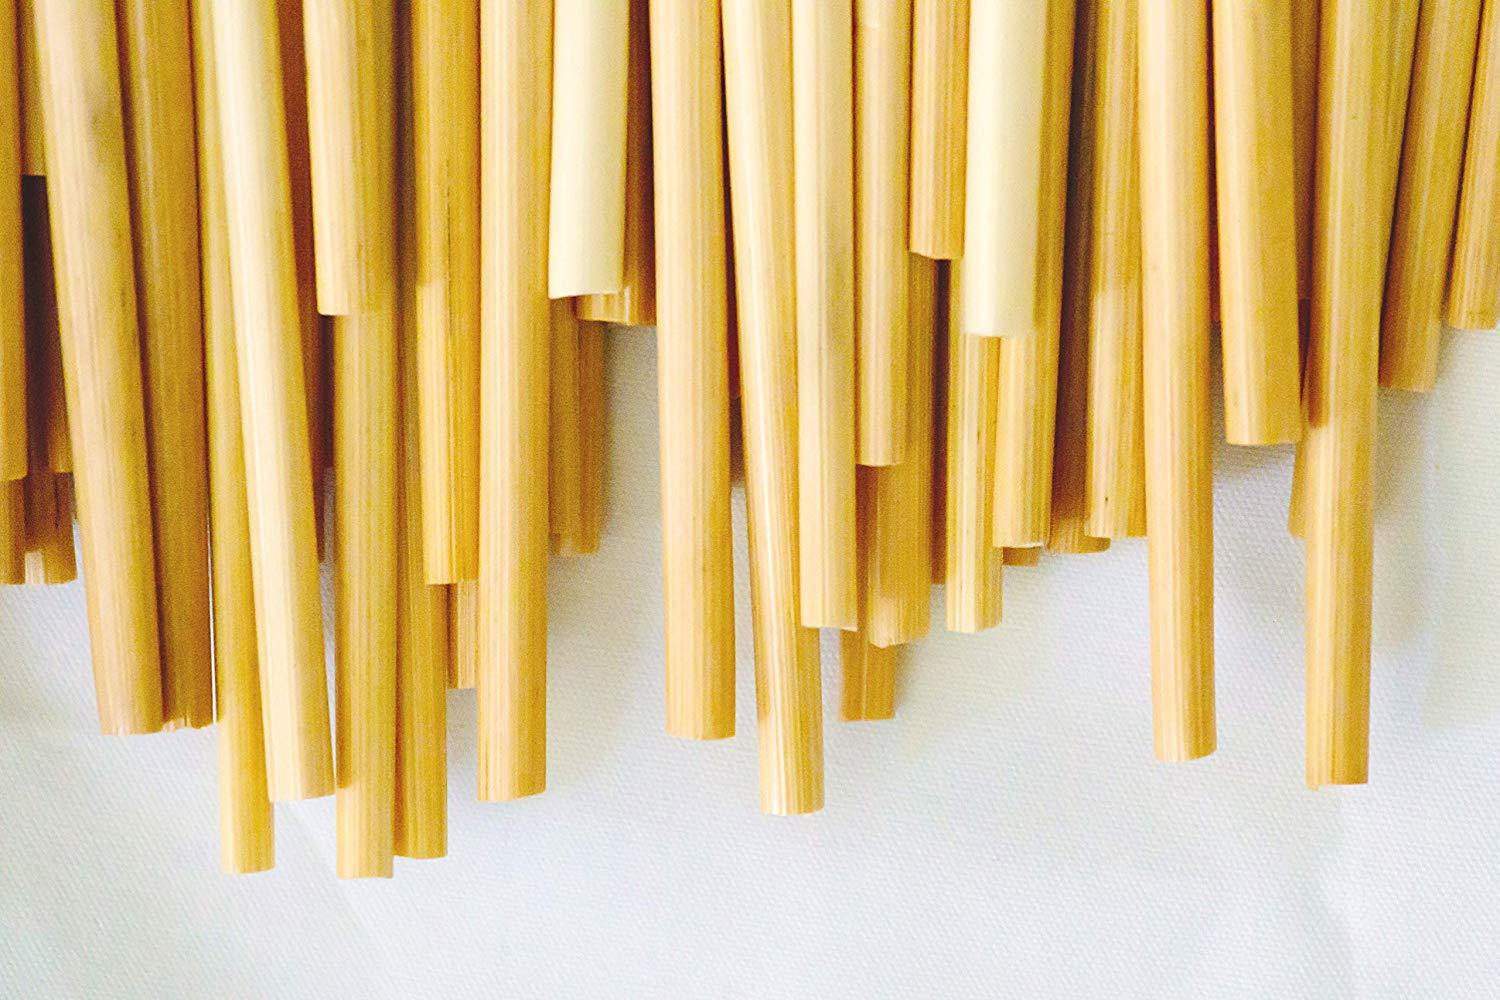 small wheat straws